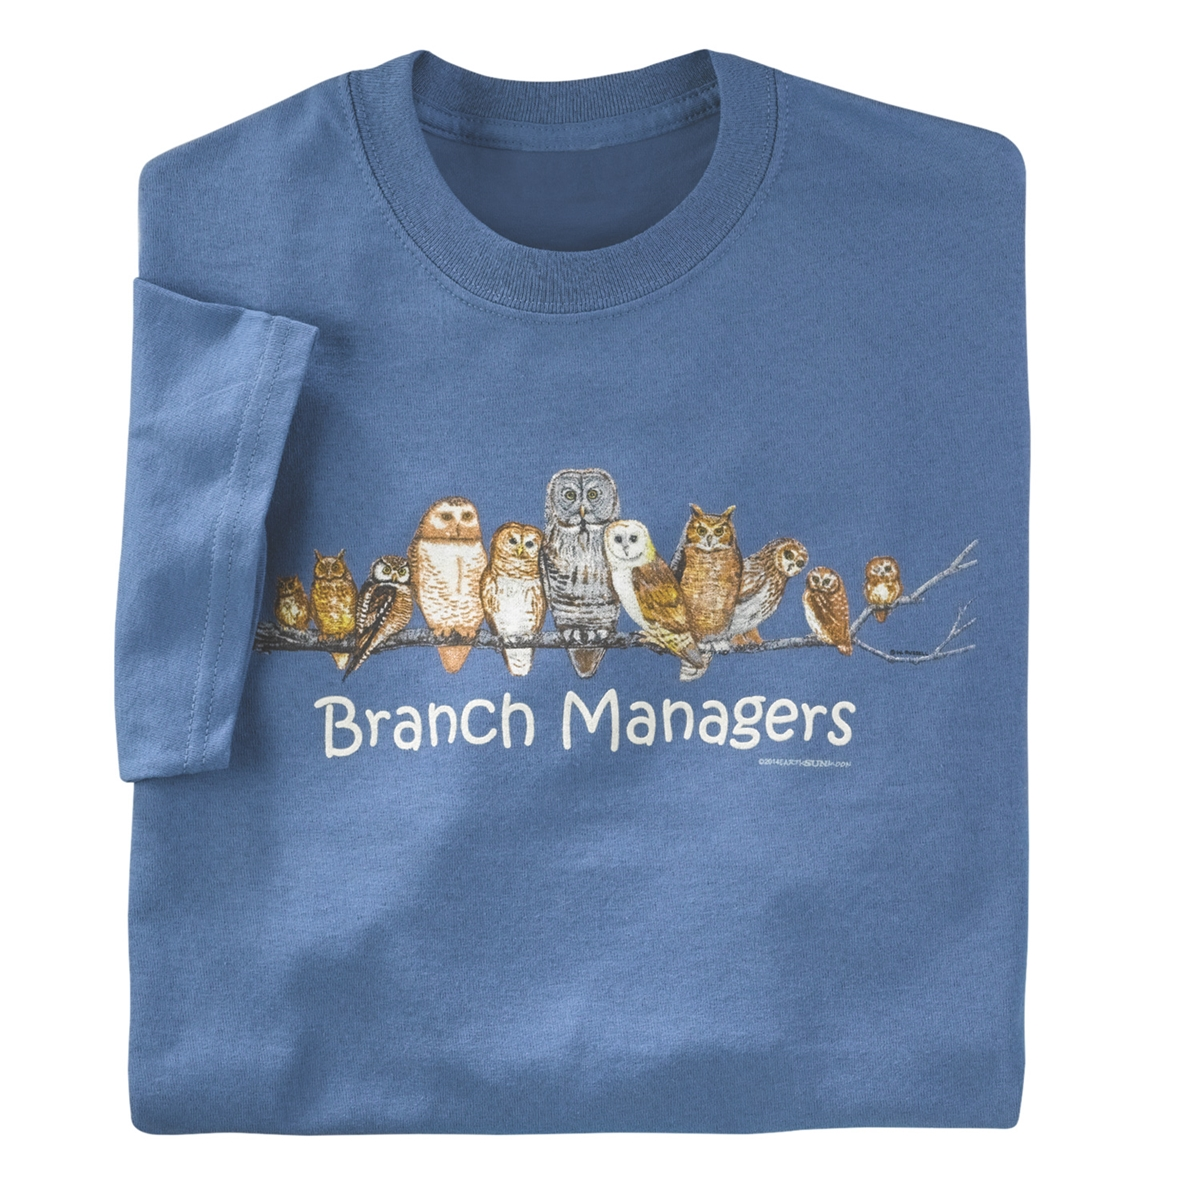 Branch Managers Tee